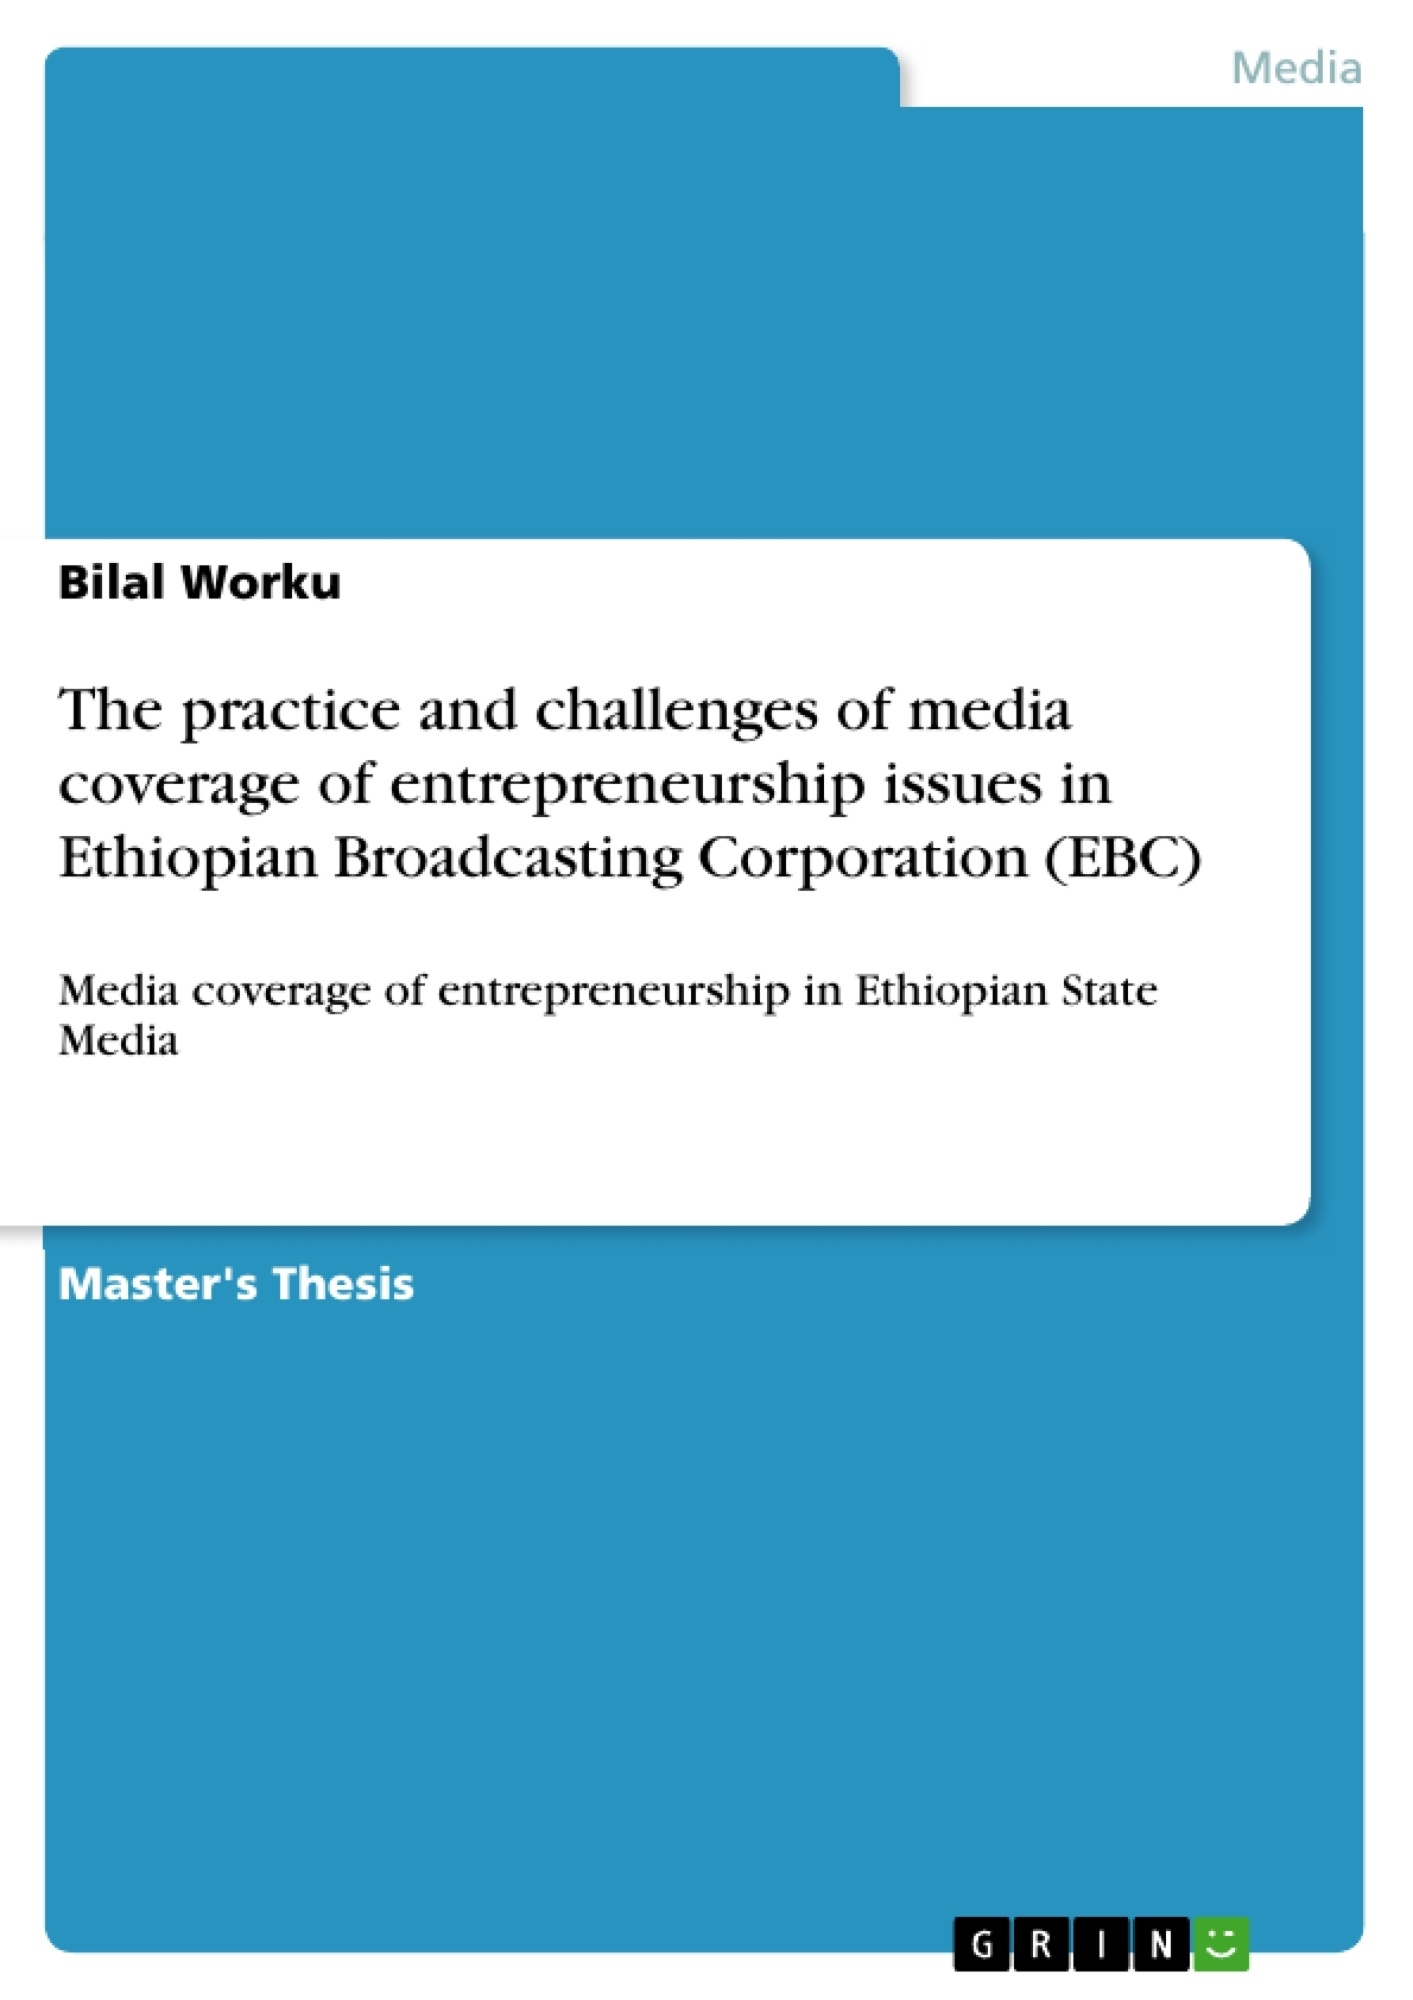 The practice and challenges of media coverage of entrepreneurship the practice and challenges of media coverage of entrepreneurship publish your masters thesis bachelors thesis essay or term paper fandeluxe Gallery